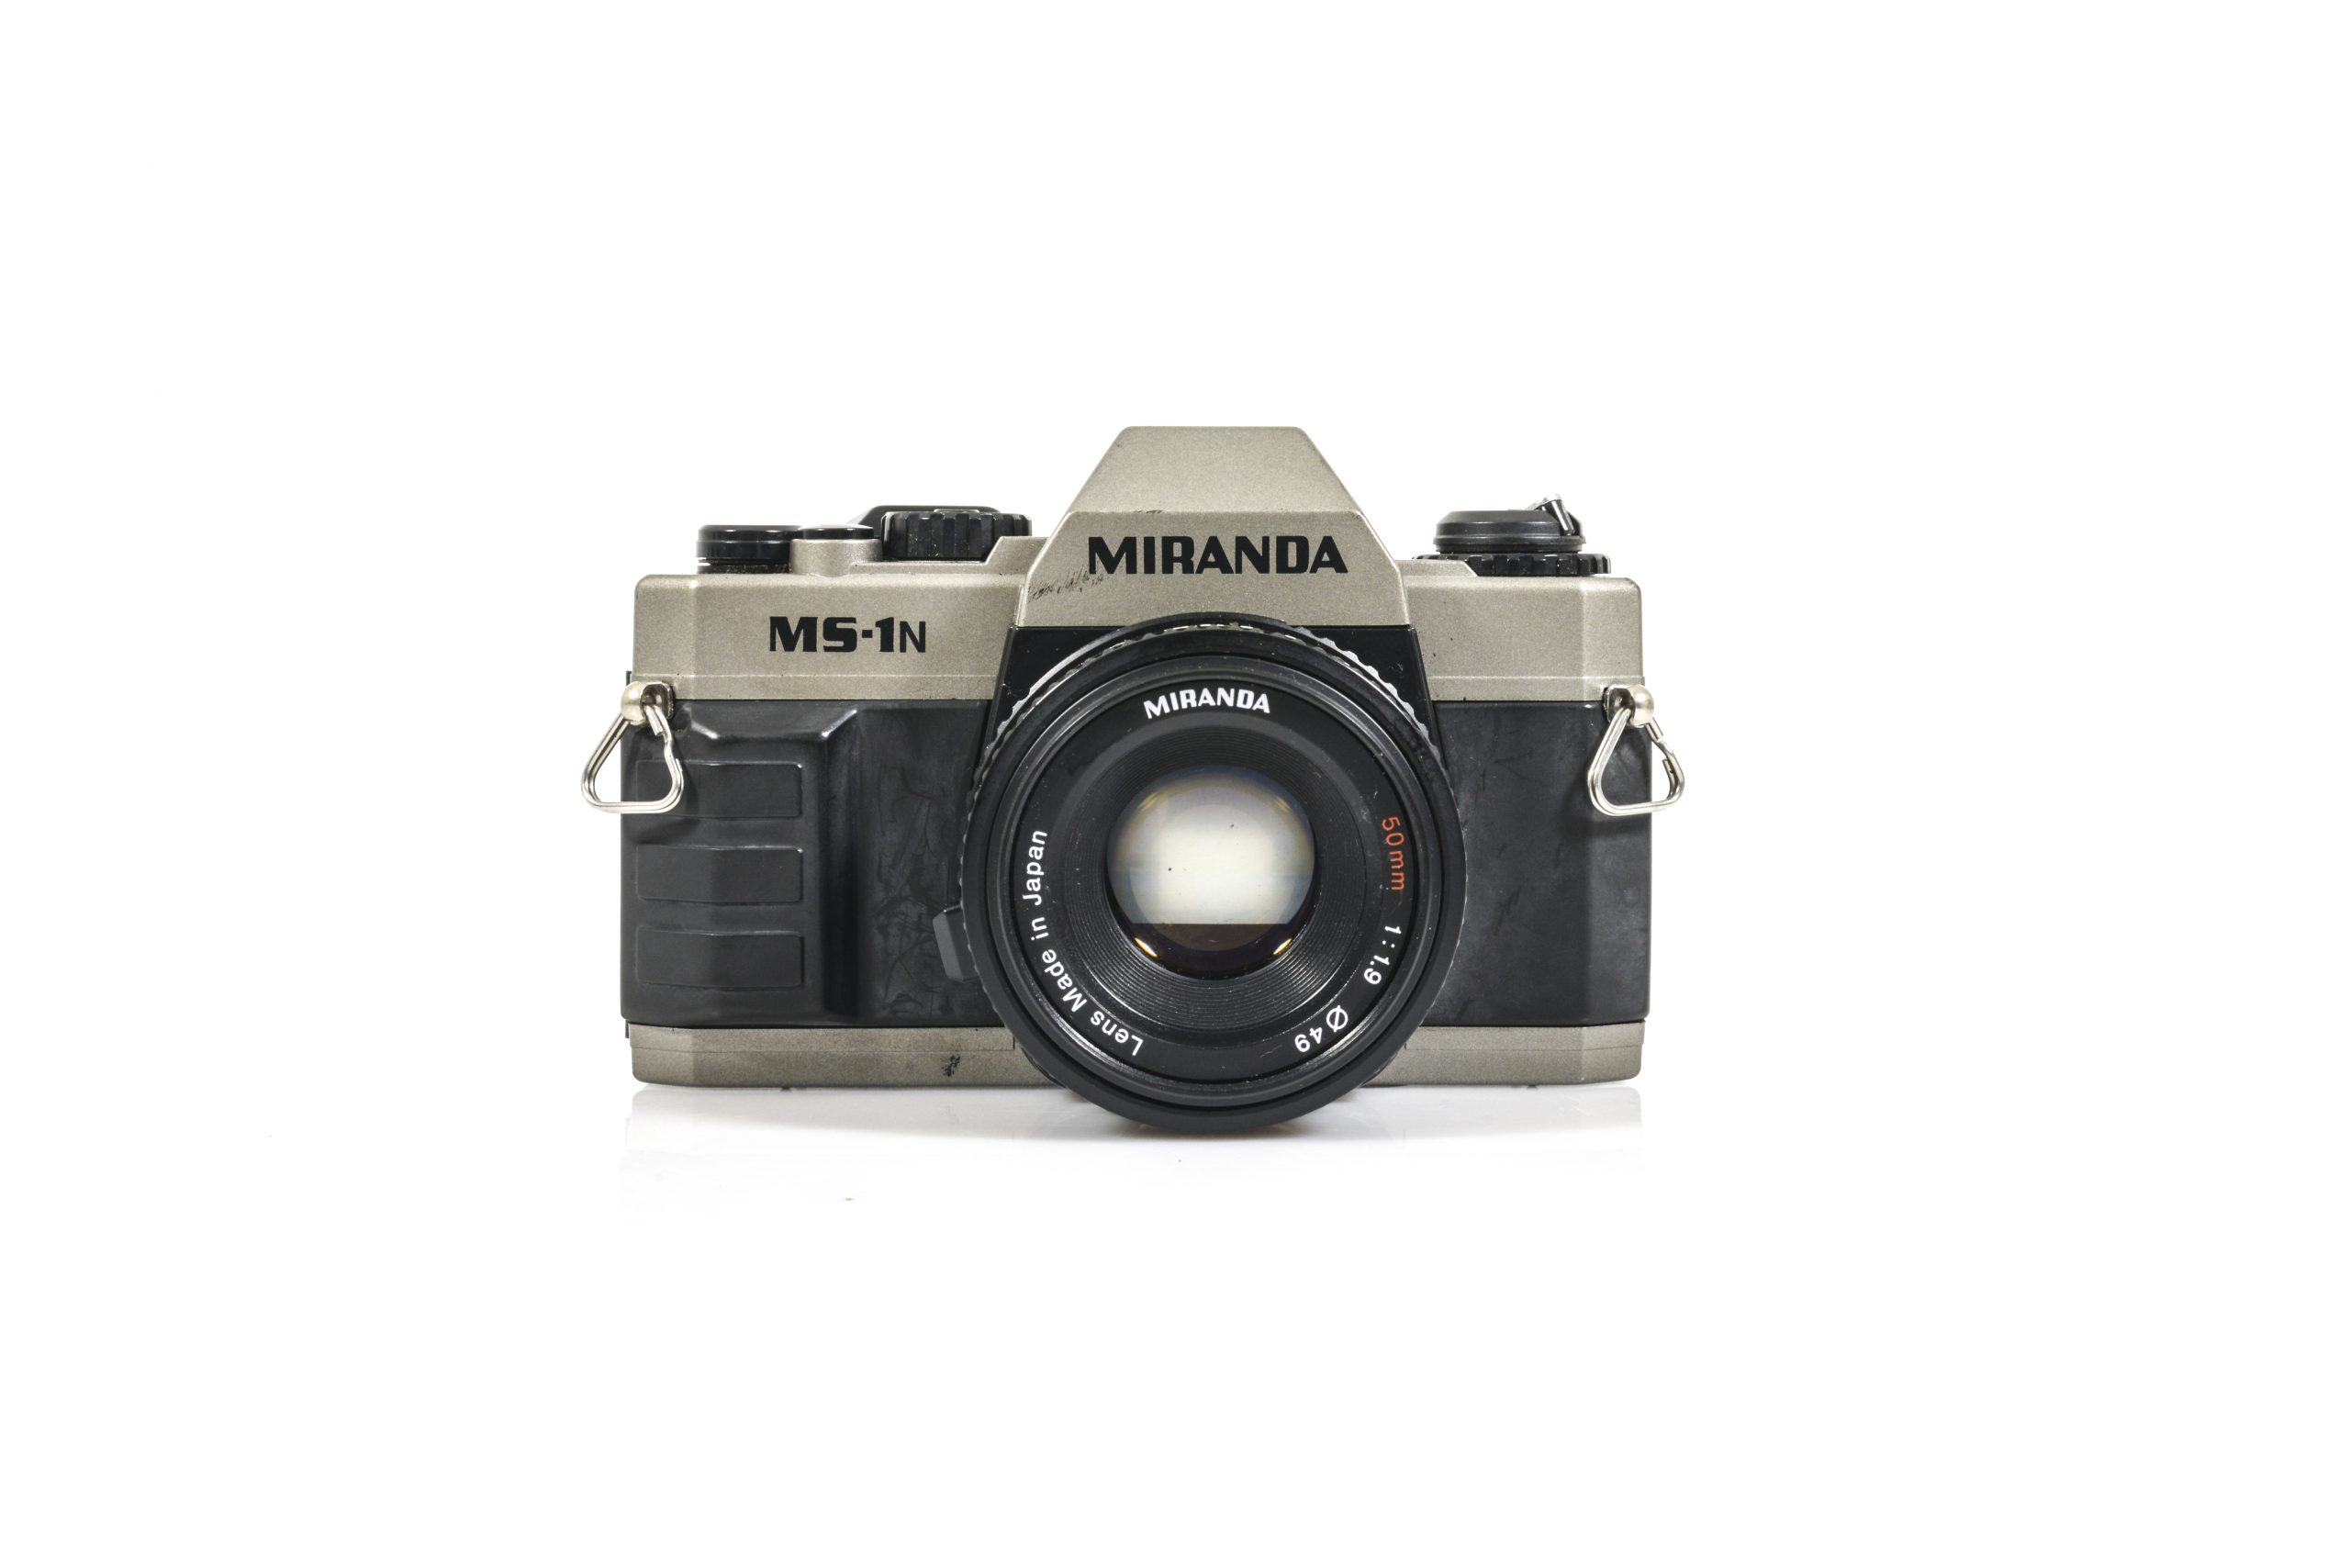 Lovely Miranda MS-1N 35mm Film Camera with Miranda 50mm 1:1.9 Lens